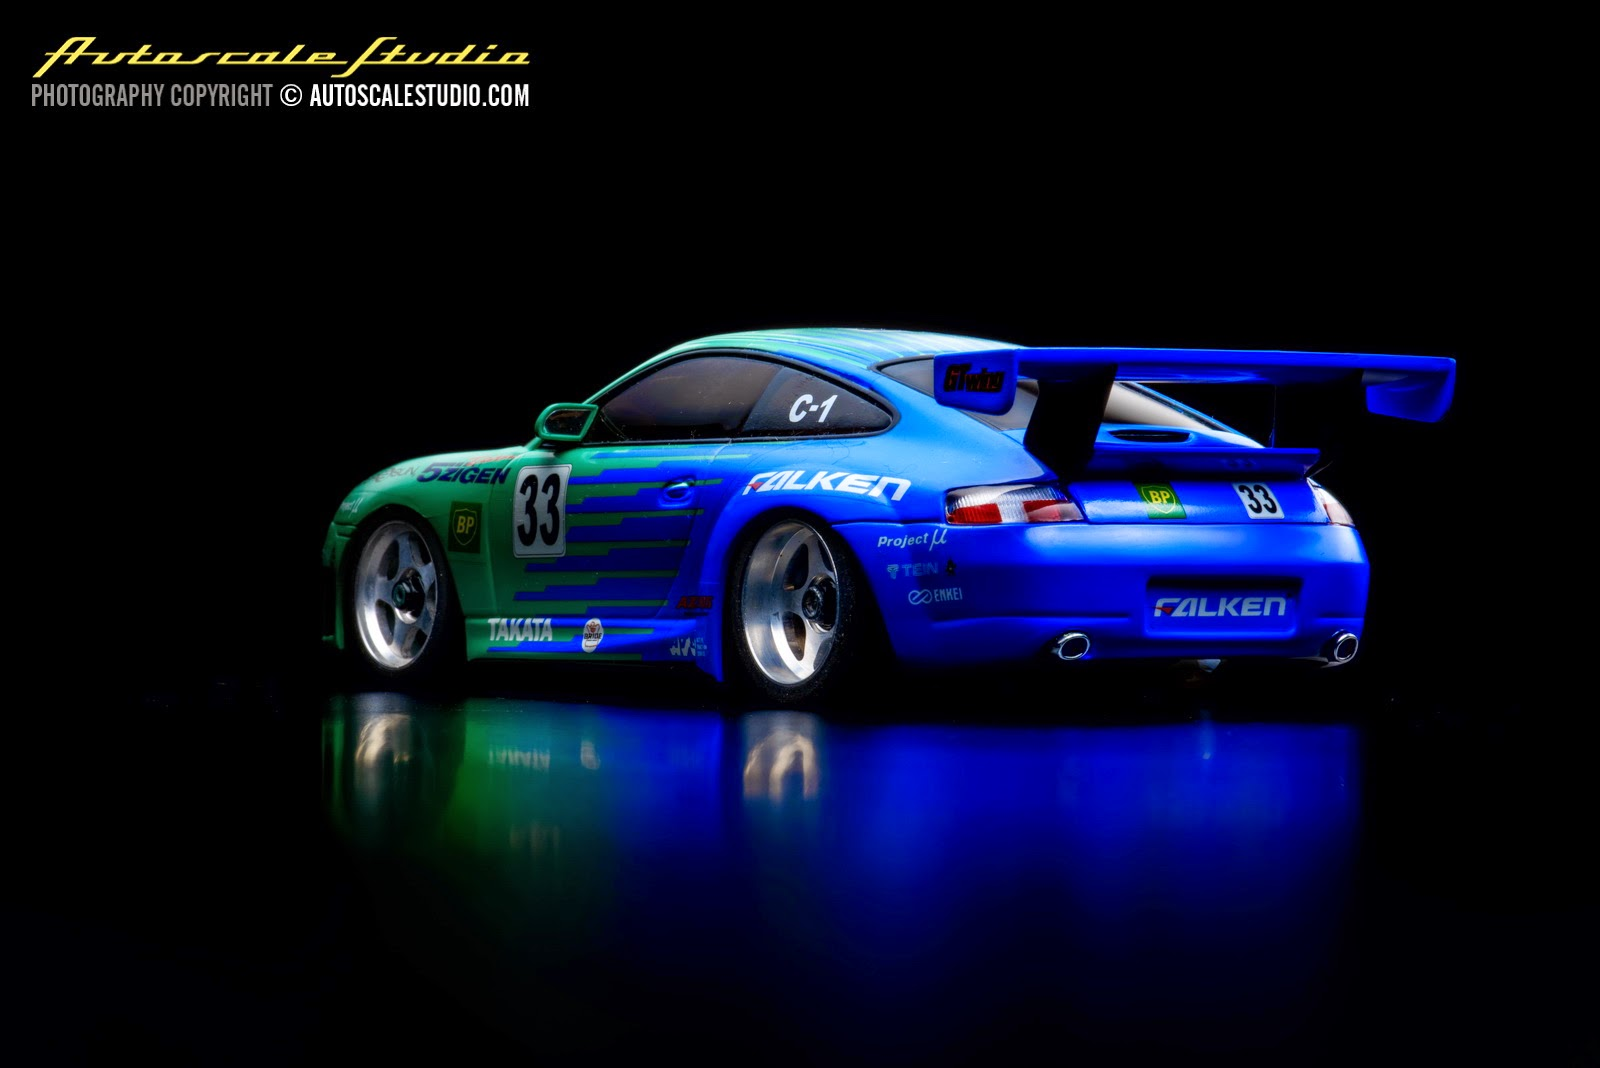 PORSCHE OFFICIAL 911 996 SUPERCUP RACECAR SCHEDULE SHOWROOM POSTER 1998